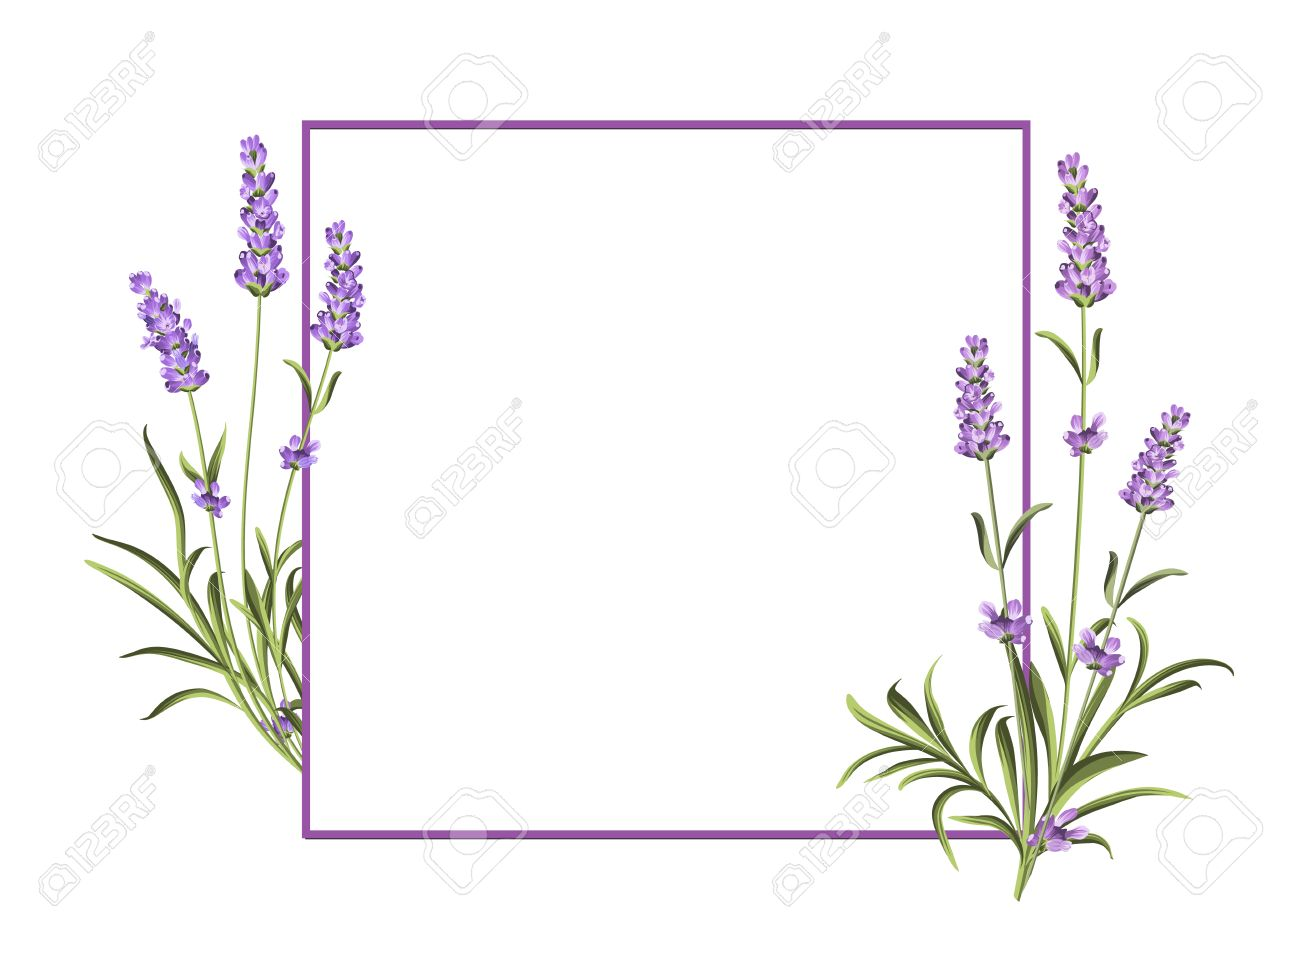 Bunch of lavender flowers on a white background. Marriage invitation card template. Vector illustration. - 56485933